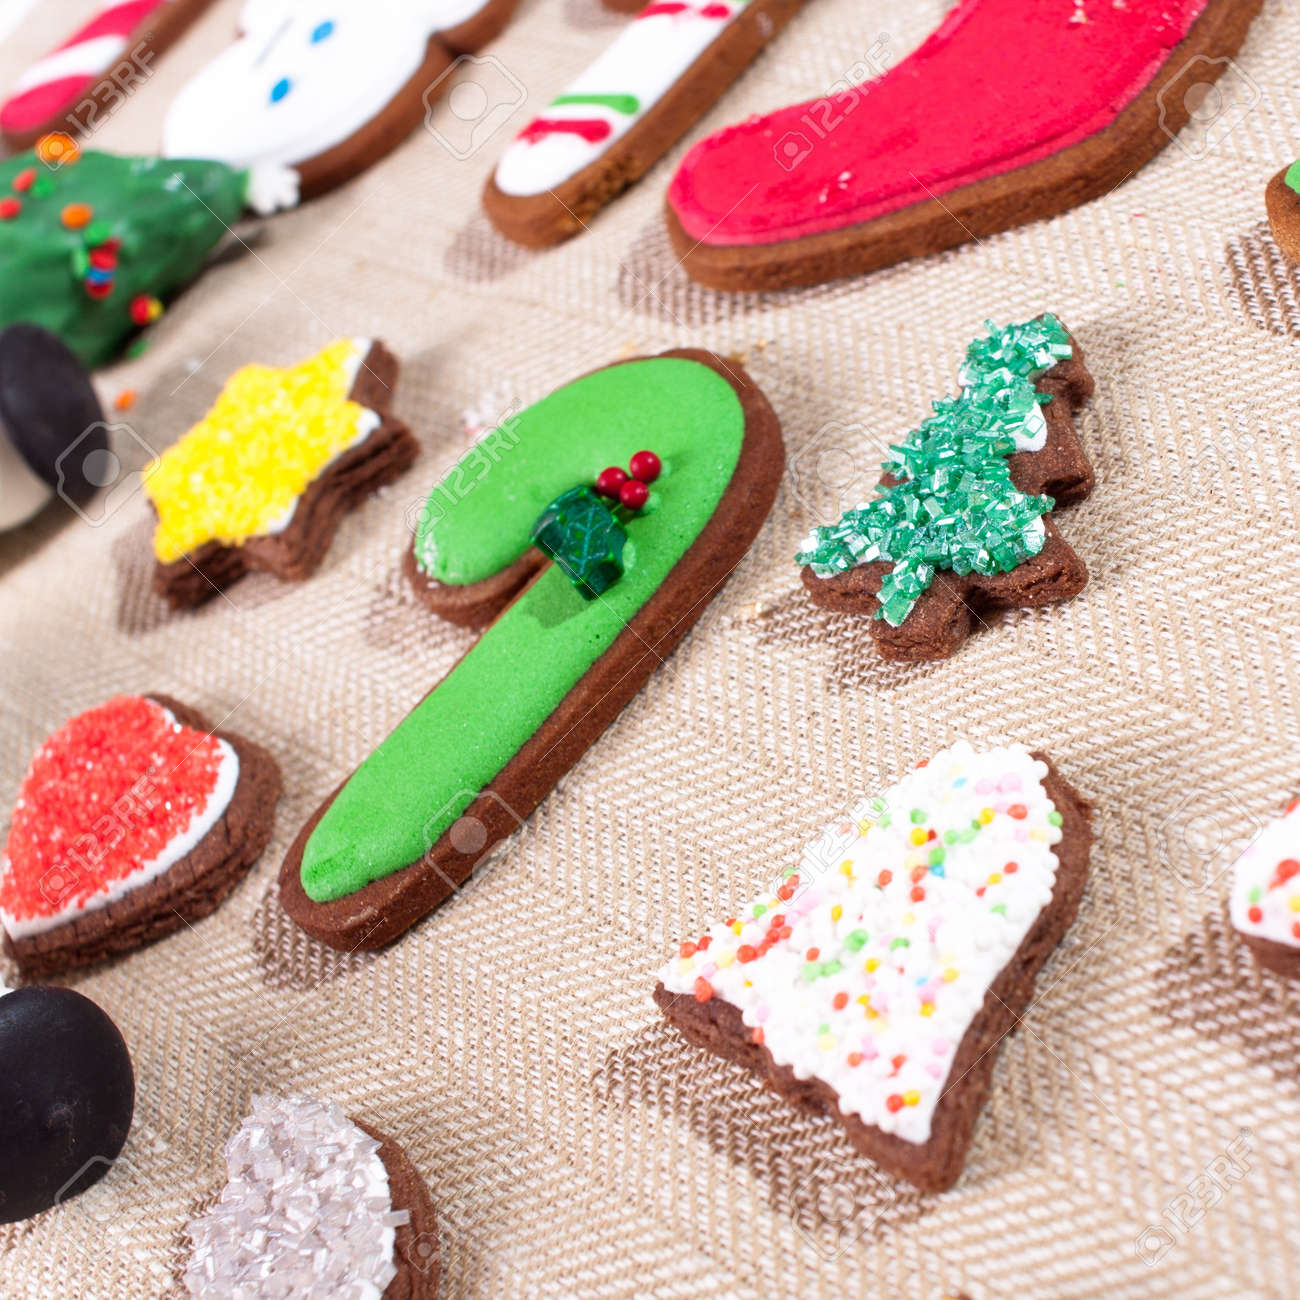 Christmas Cookies For Kids And Decoration Stock Photo, Picture And ...